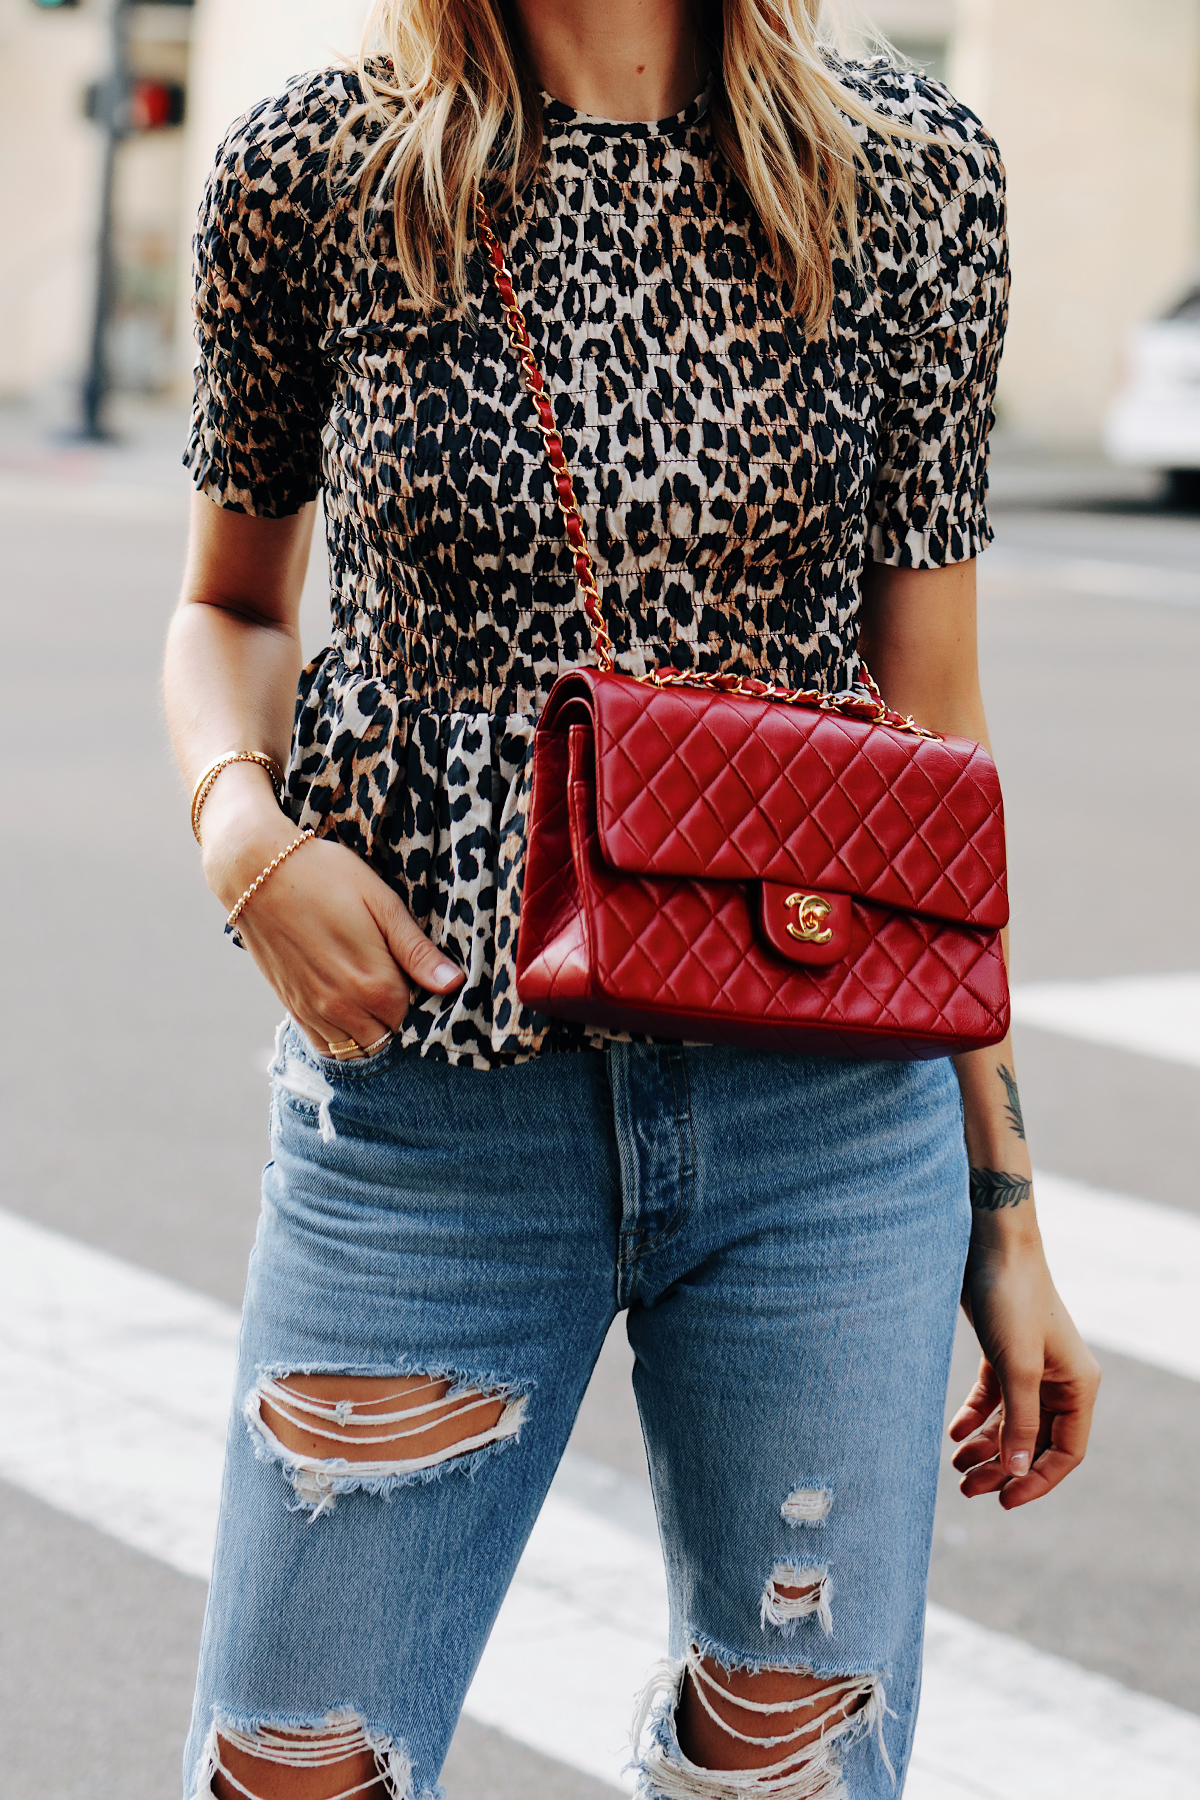 Fashion Jackson Wearing Ganni Leopard Peplum Top Levis Ripped Jeans Chanel Classic Flap Red Handbag